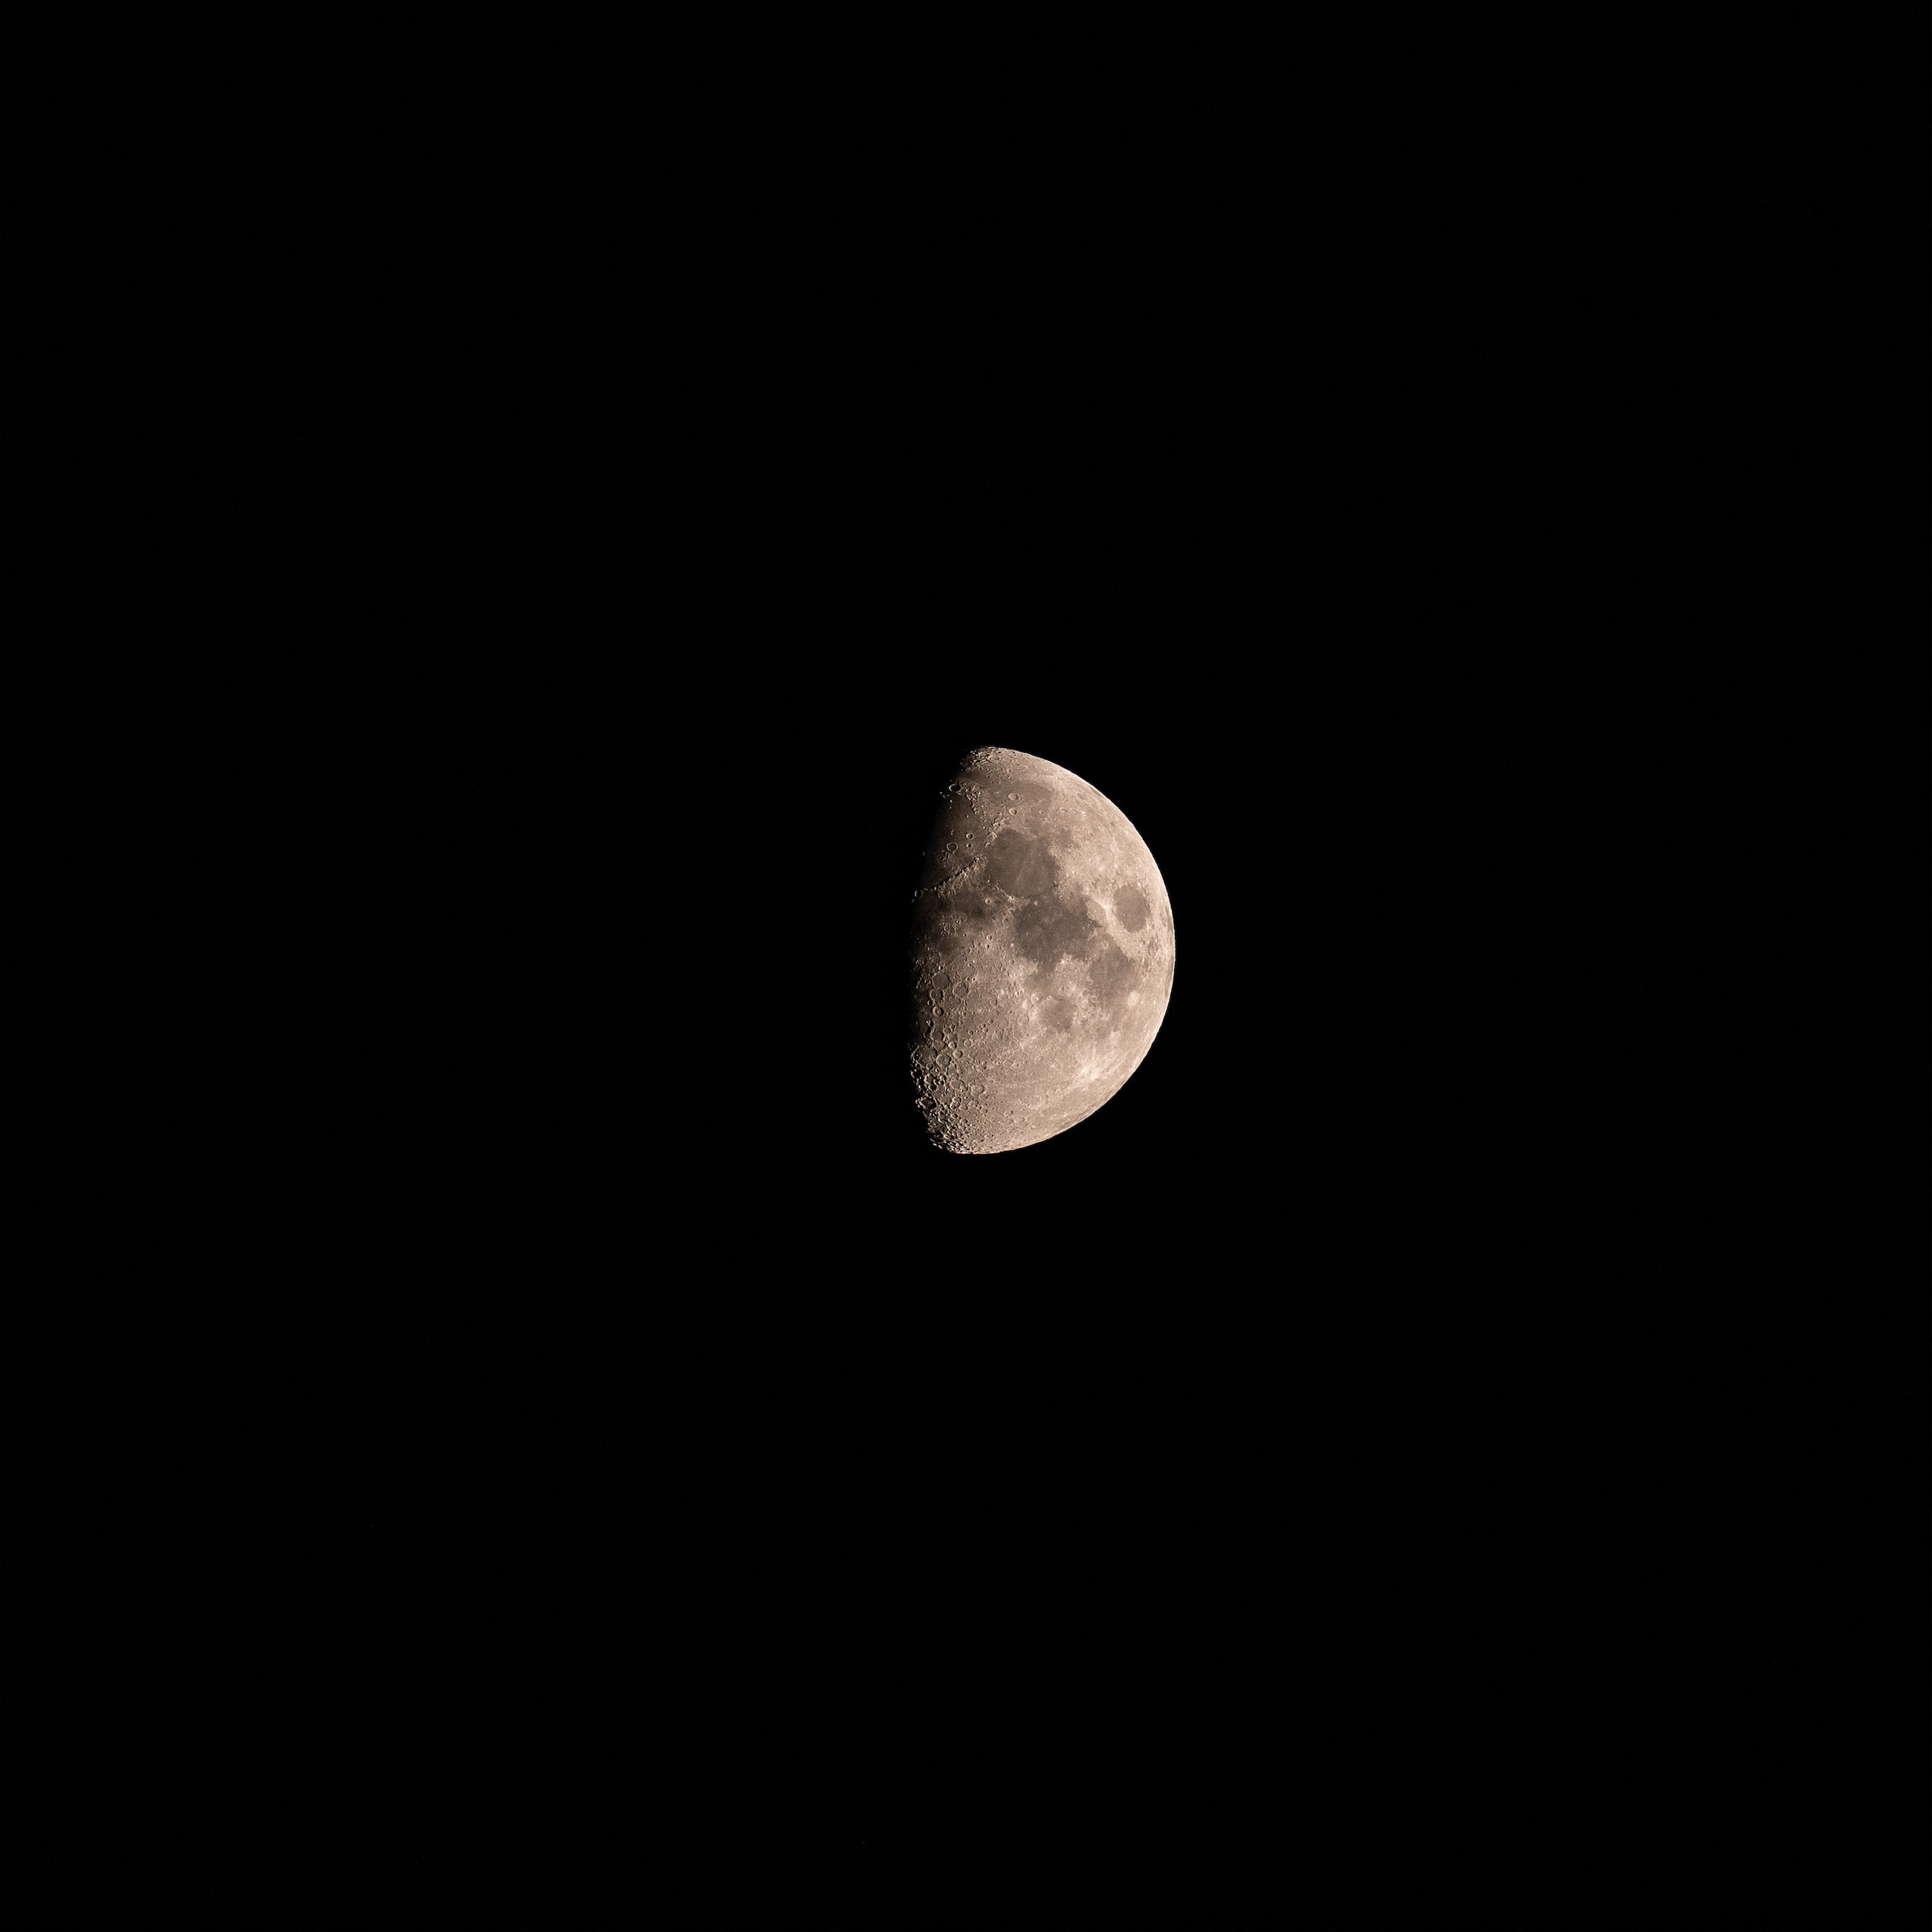 Last Night's Moon taken with Leica SL2 90-280mm